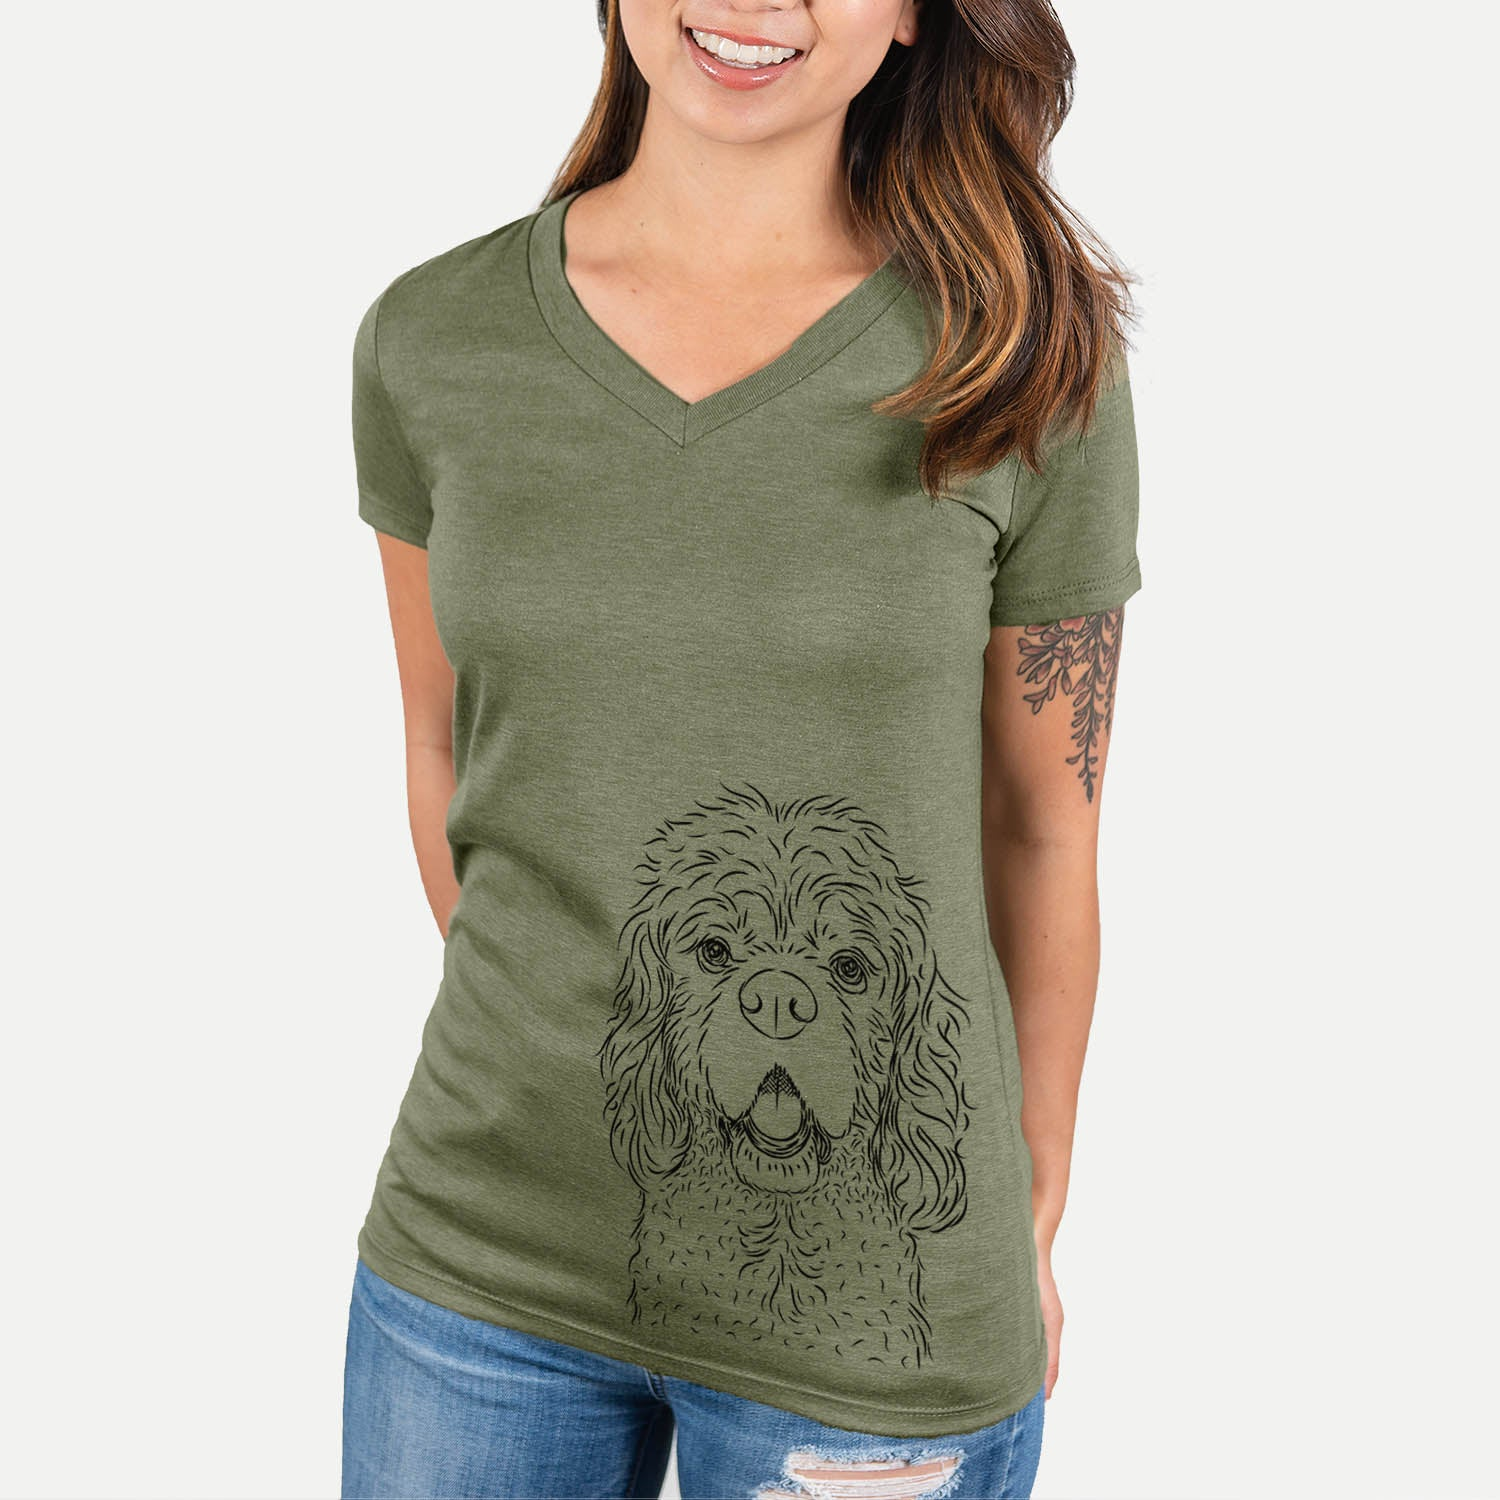 Casey the American Cocker Spaniel - Women's Modern Fit V-neck Shirt